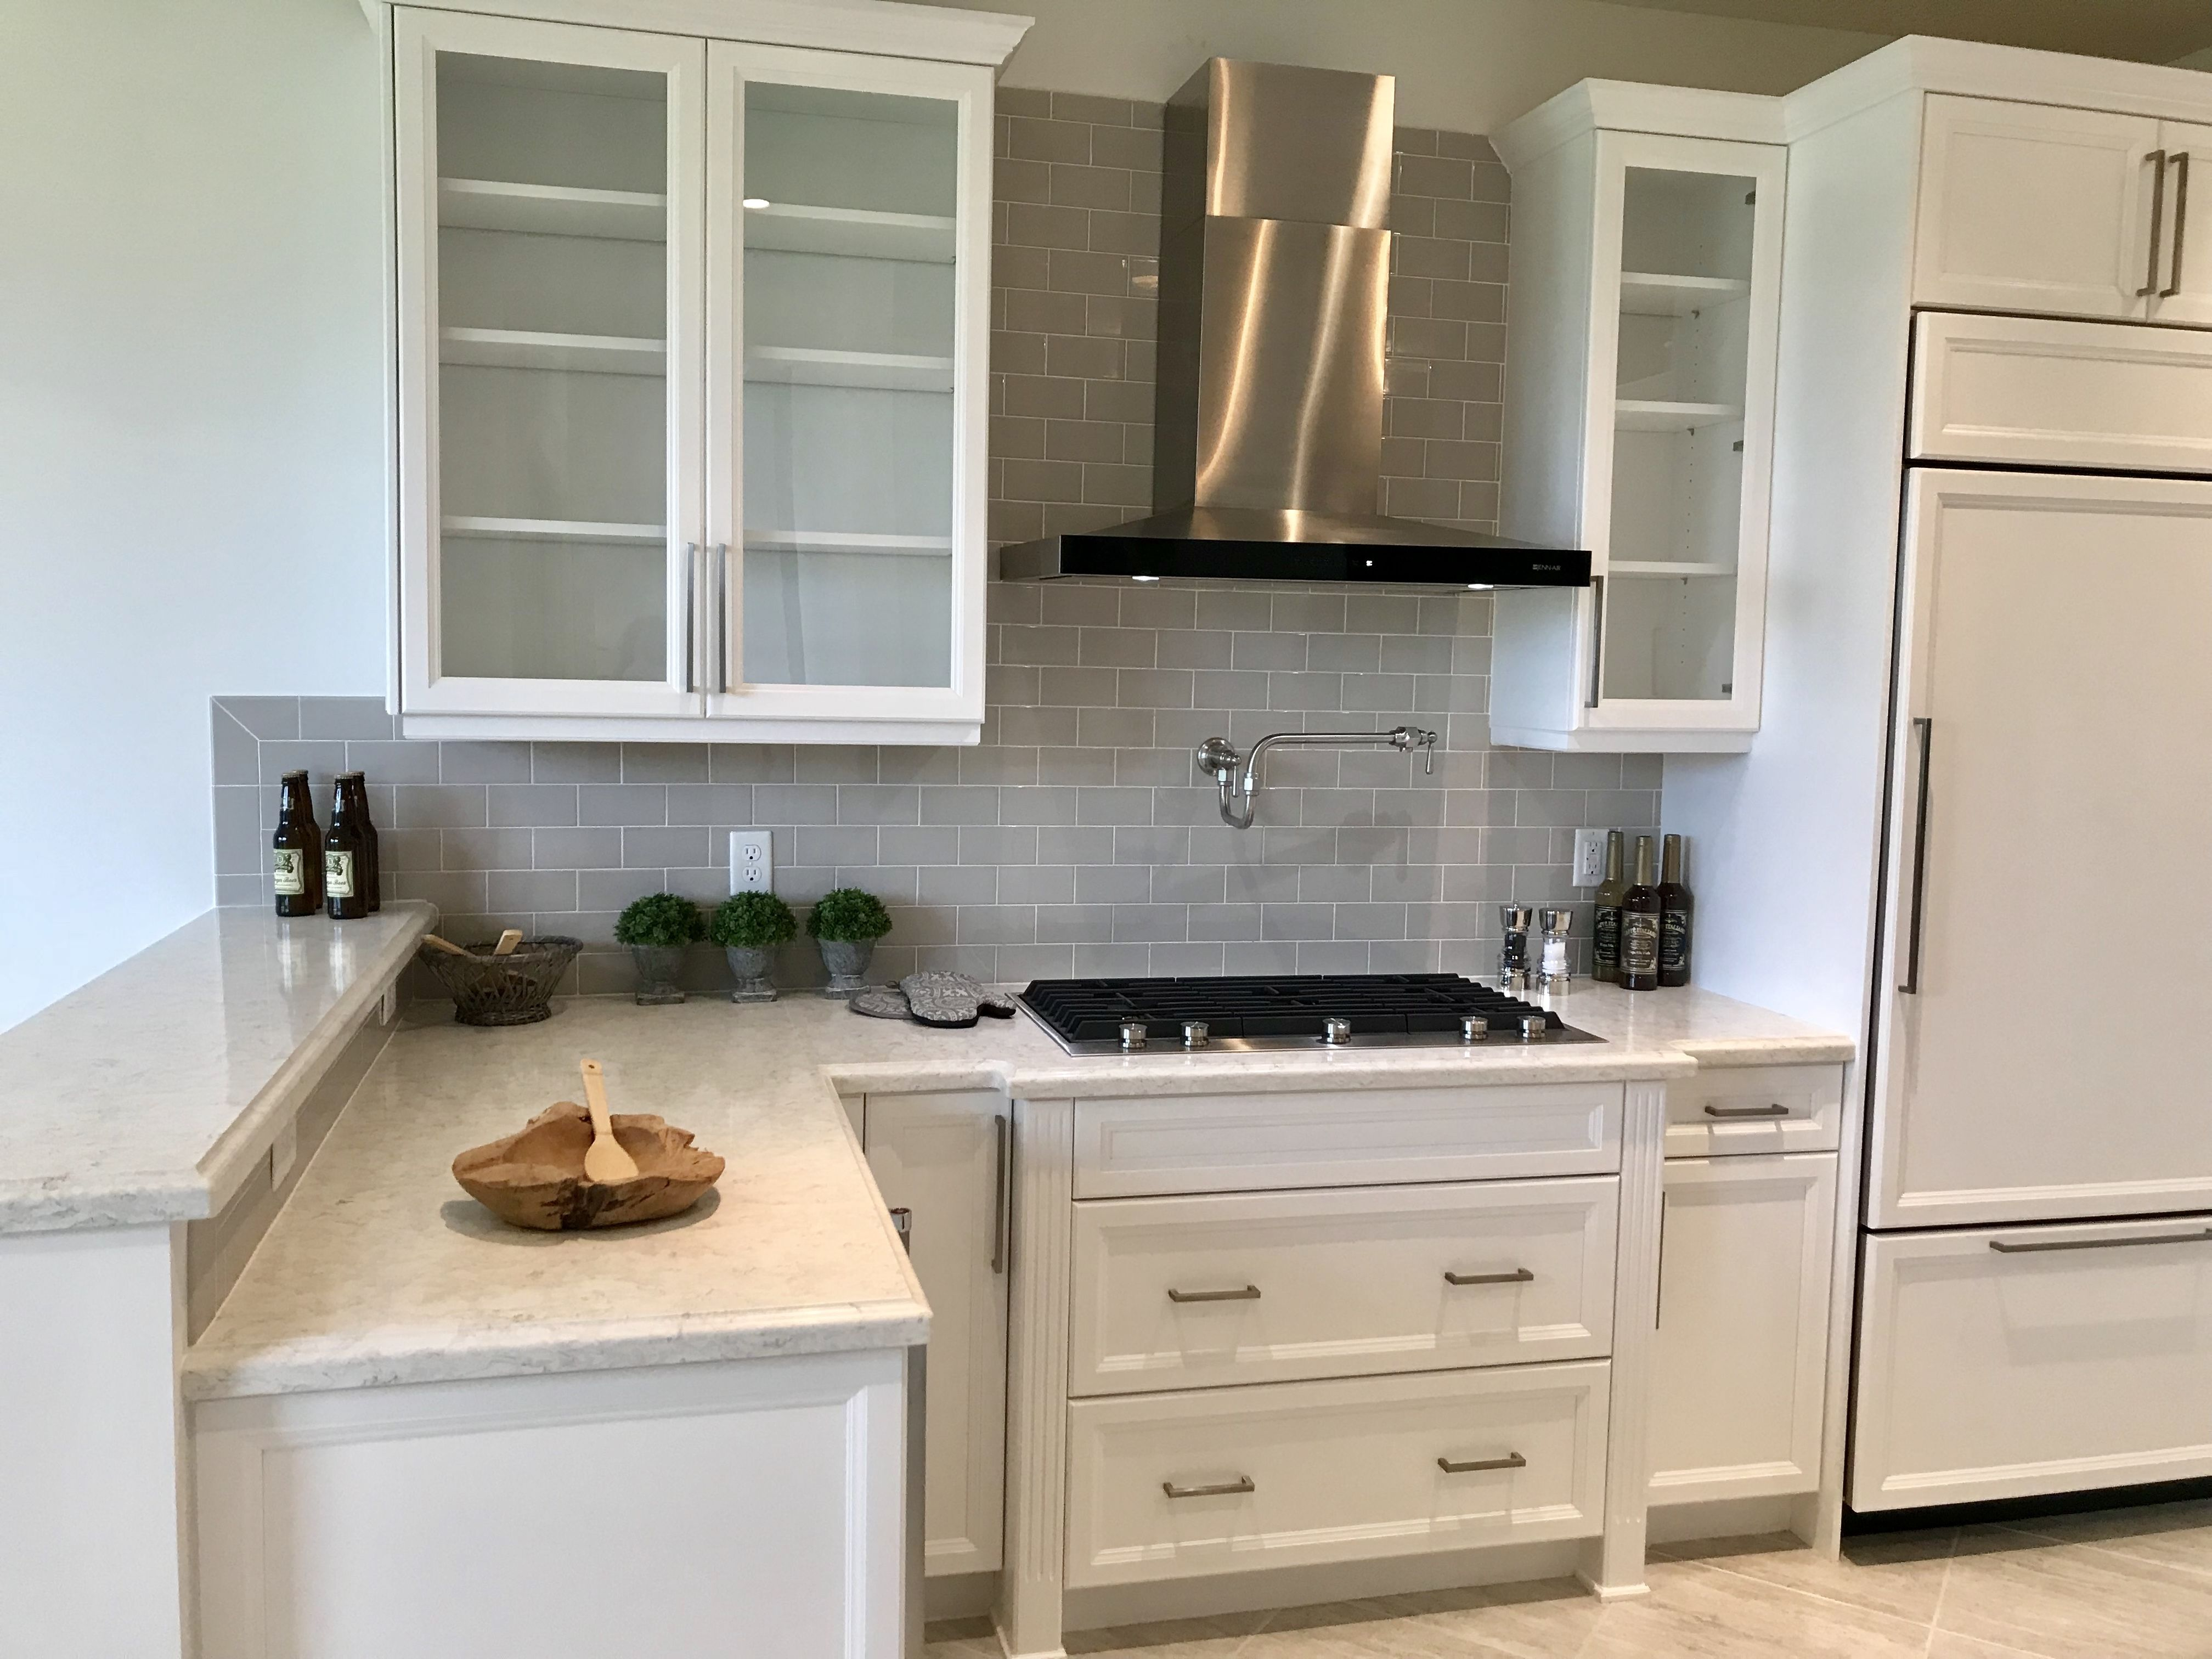 Pin By Robin Antonelli On Empty Homes Staged To Sell In 2020 Home